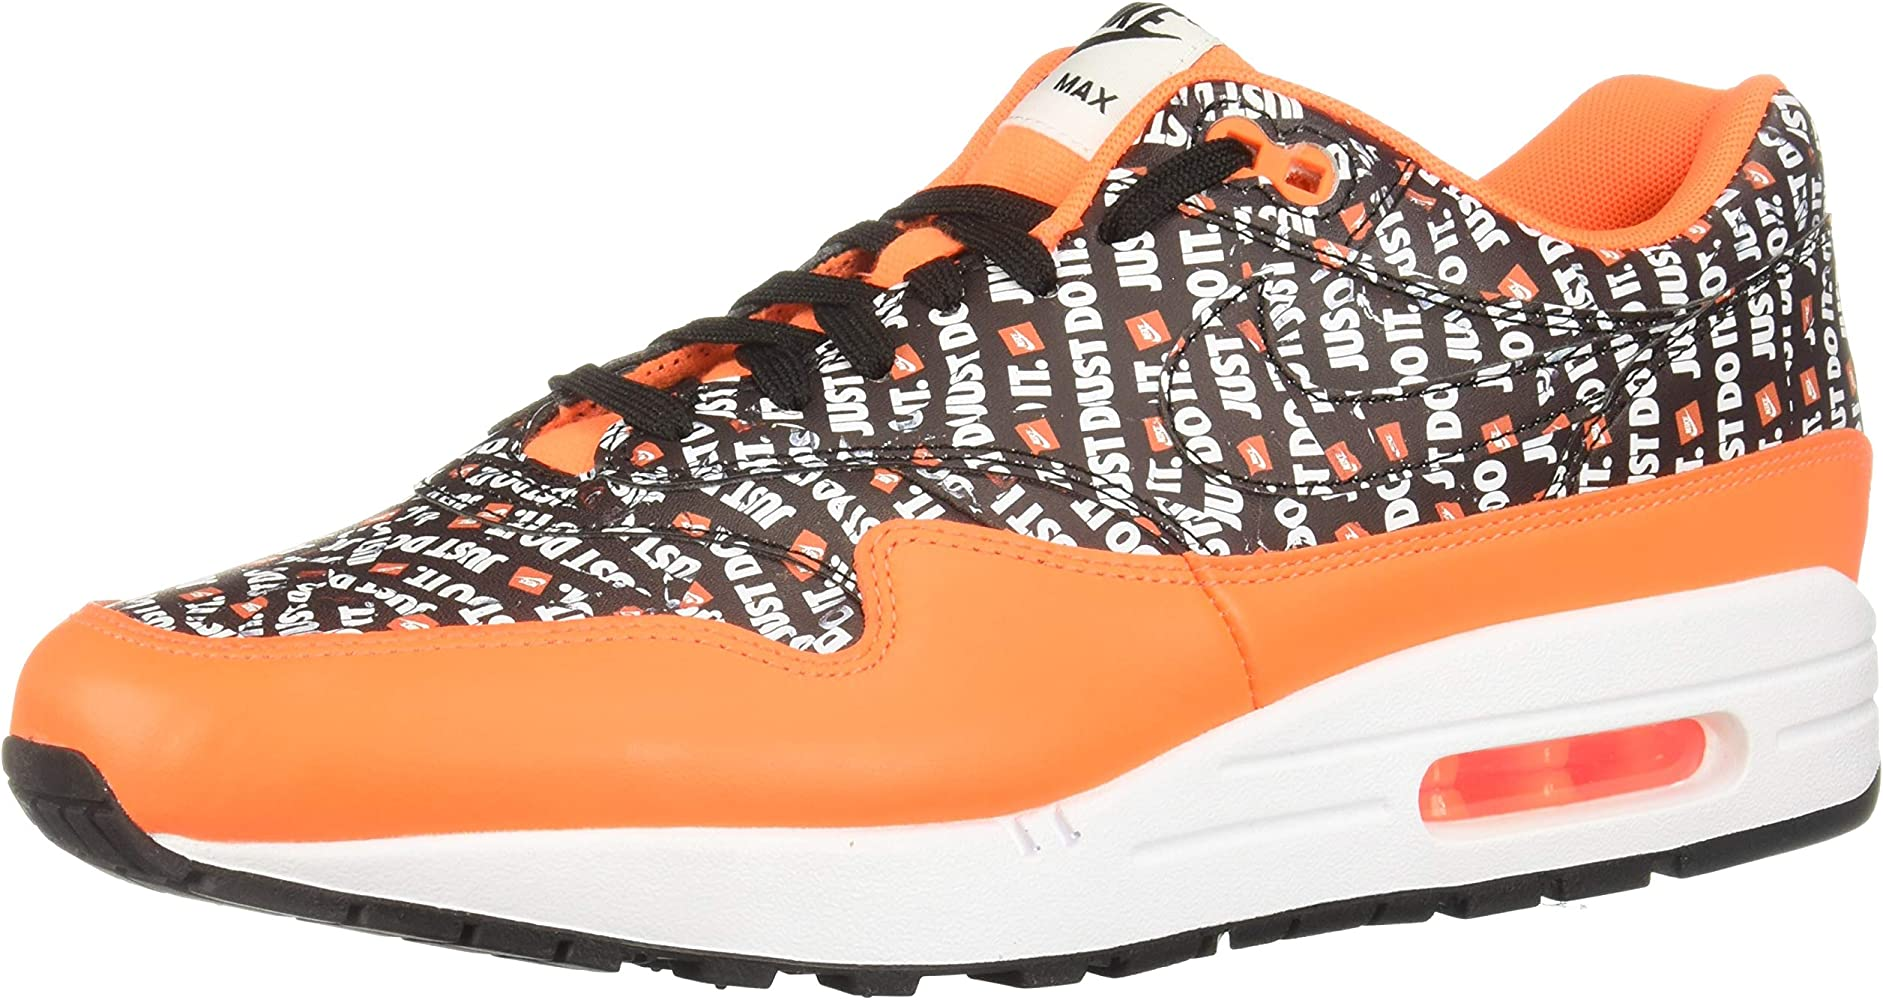 Mens Air Max 1 Premium Fashion Sneaker (BlackTotal Orange White, 9 M US)